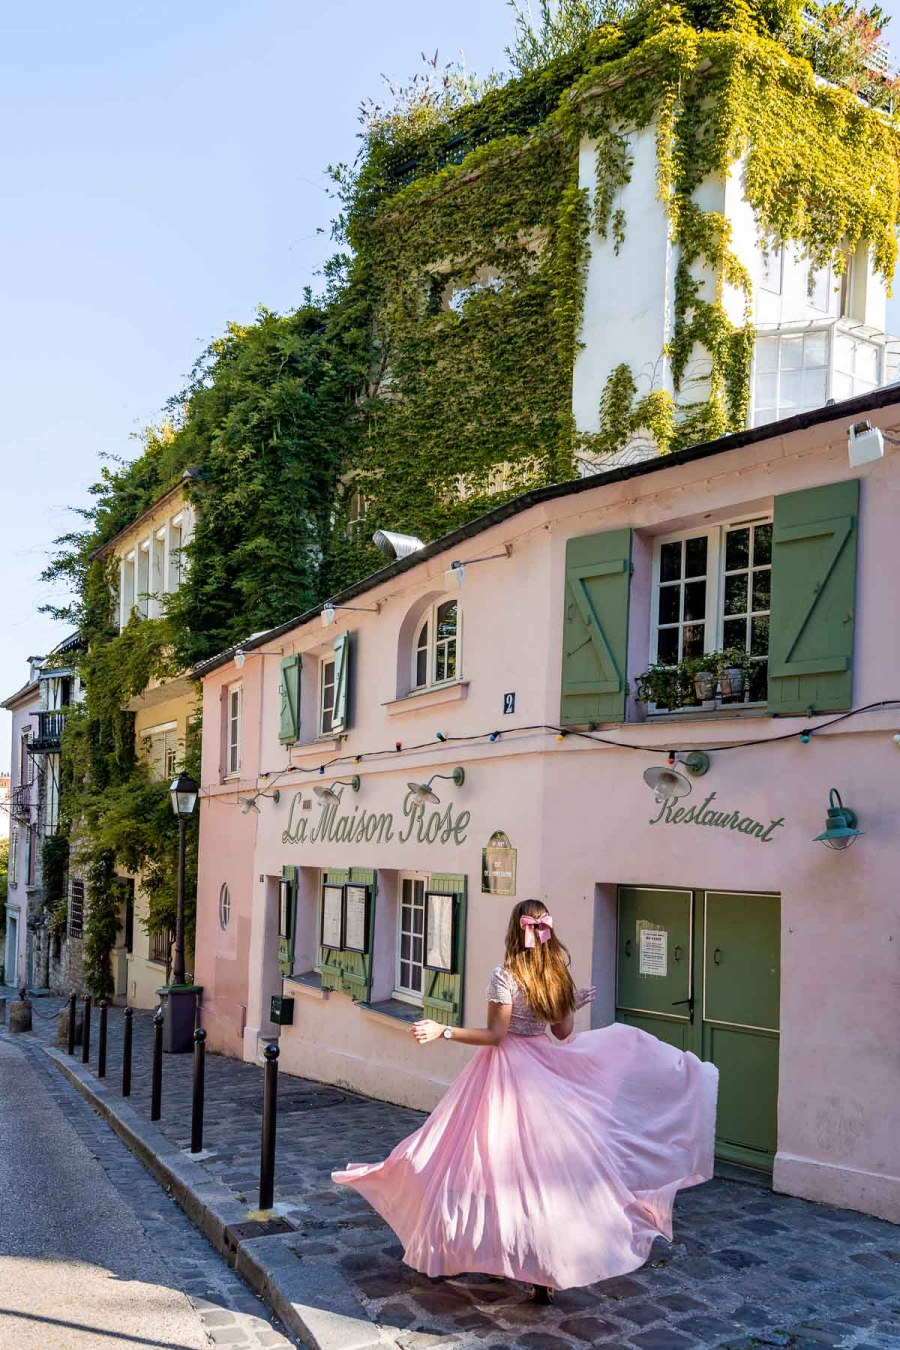 Girl in a pink skirt twirling in front of La Maison Rose in Montmartre, Paris